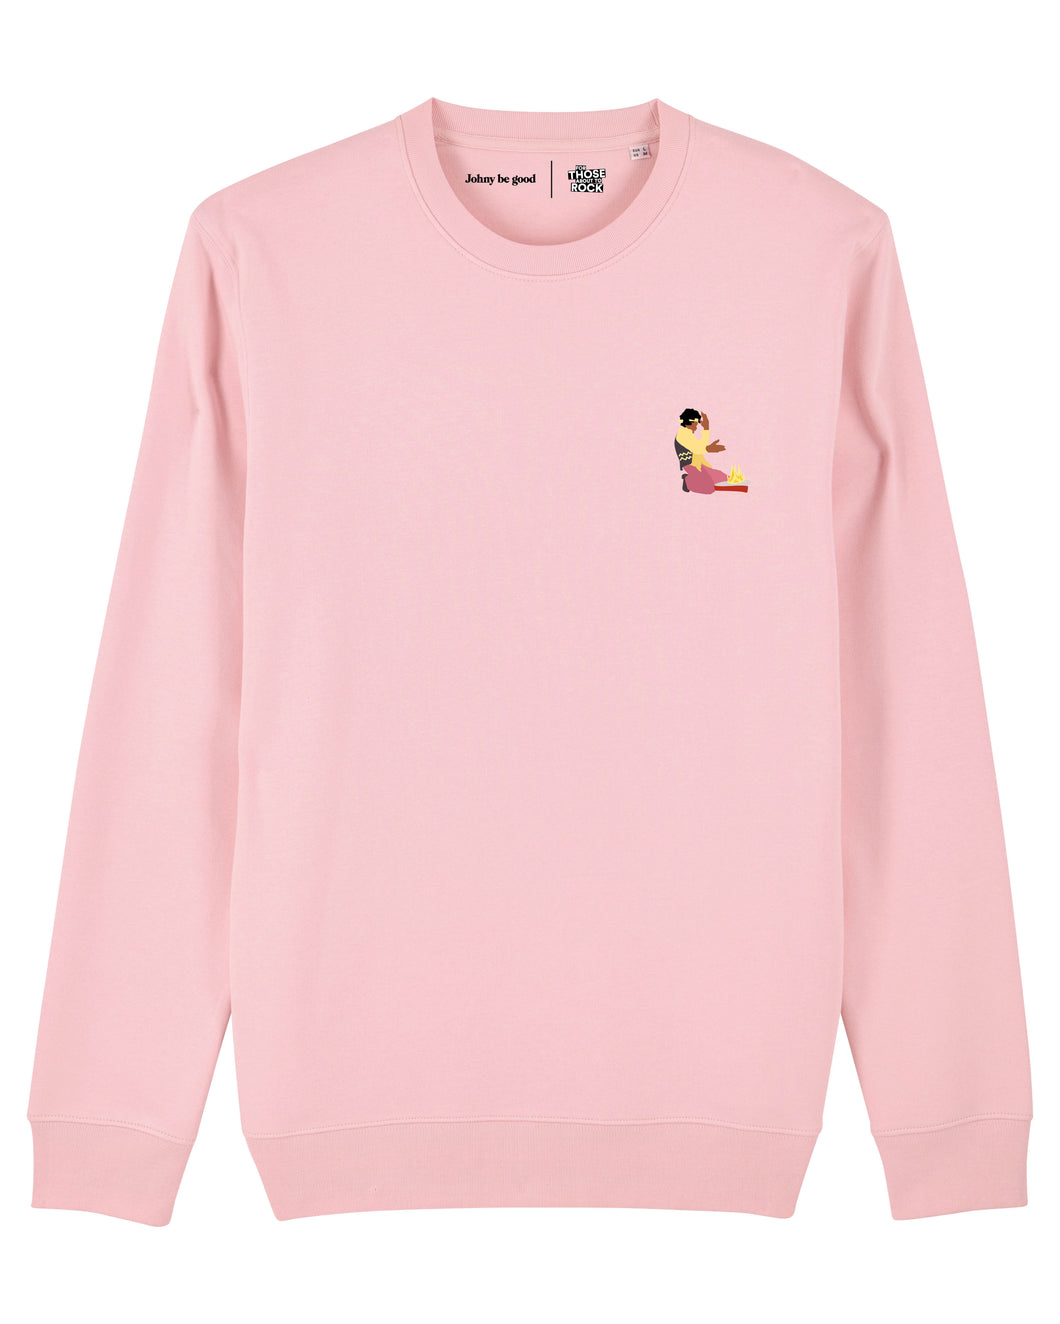 Sweater JIMI pink-preorder 2-3 weeks